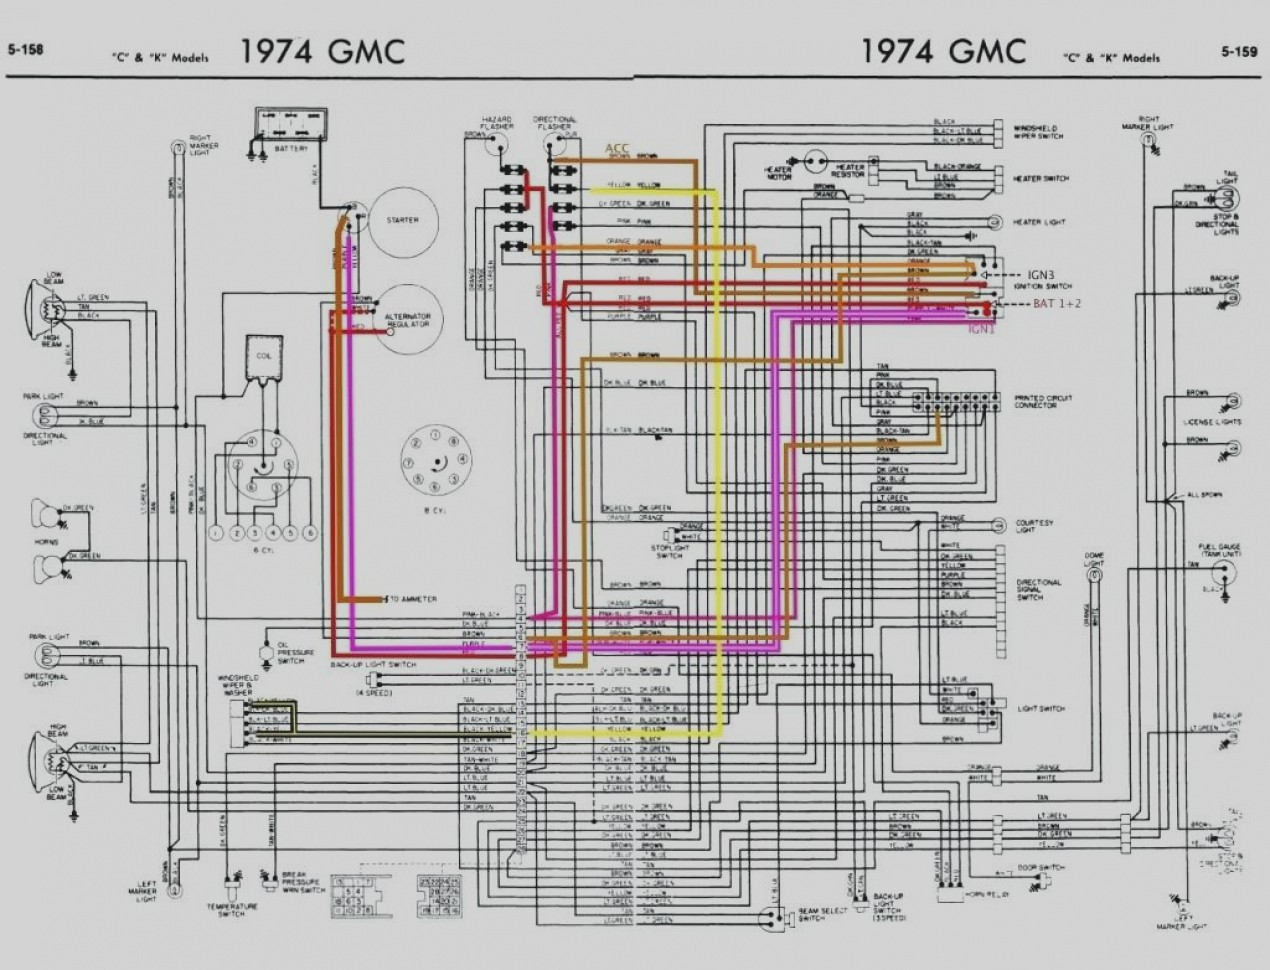 electrical wiring diagrams for cars on 1947 chevrolet wiring diagram rh jamairline co 78 chevy c10 wiring diagram 1978 Chevy Electric Schematic